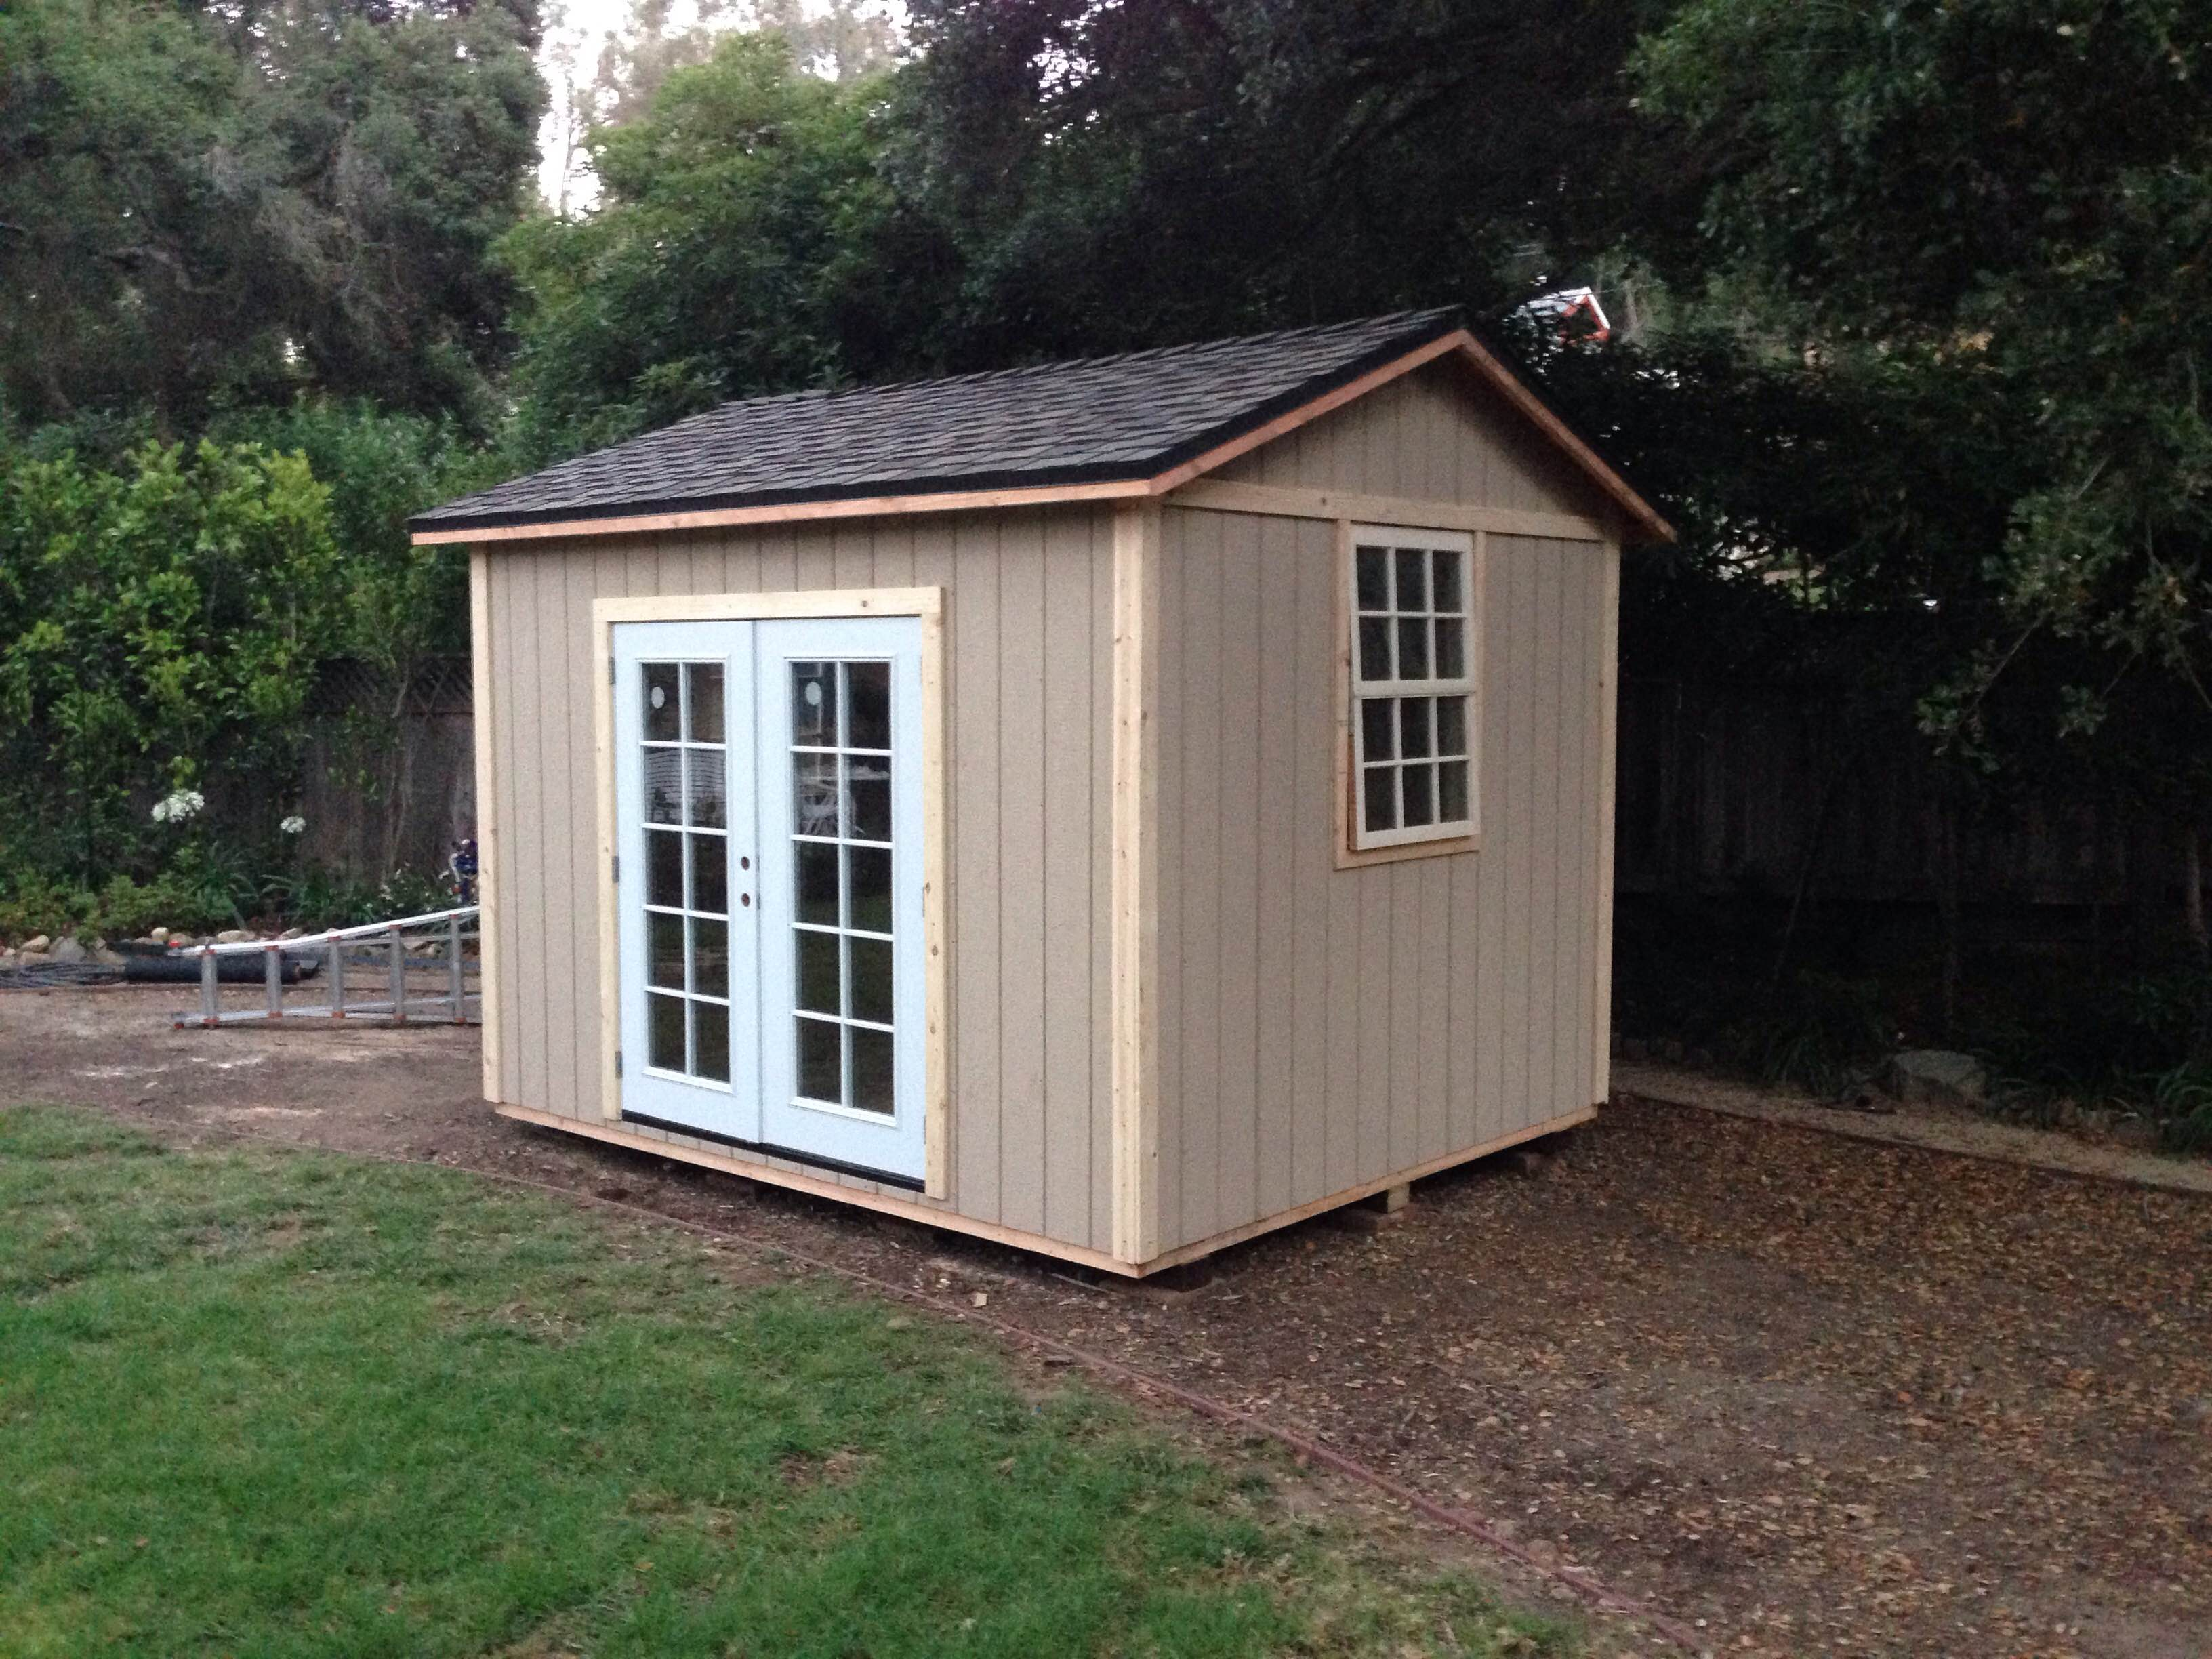 10x12' Art Studio Shed in Montecito